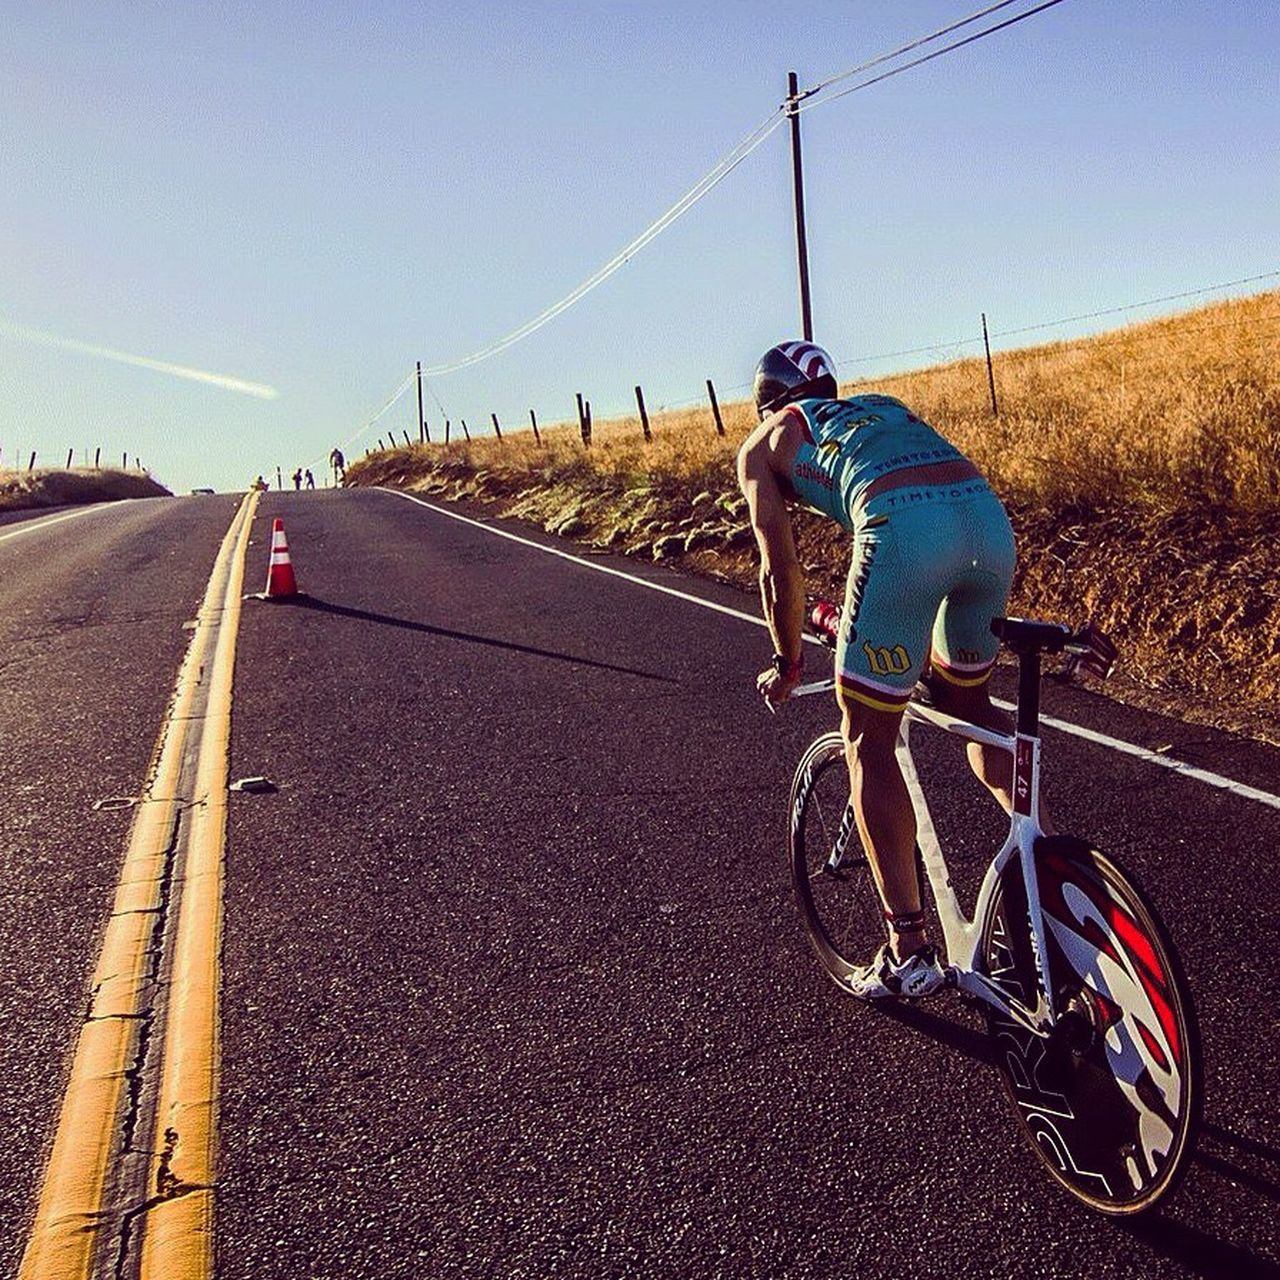 Riding off into the sunset. TRIATHLON Challenge Bike Bicycle Race Street Road Hill Flare Sun Solar Flare Photography Sports Photography Photographer Photooftheday Canon Canonphotography Canon7d  Canon_photography Canon_photos Canon_offical Tokina11-16f2.8 Tokina